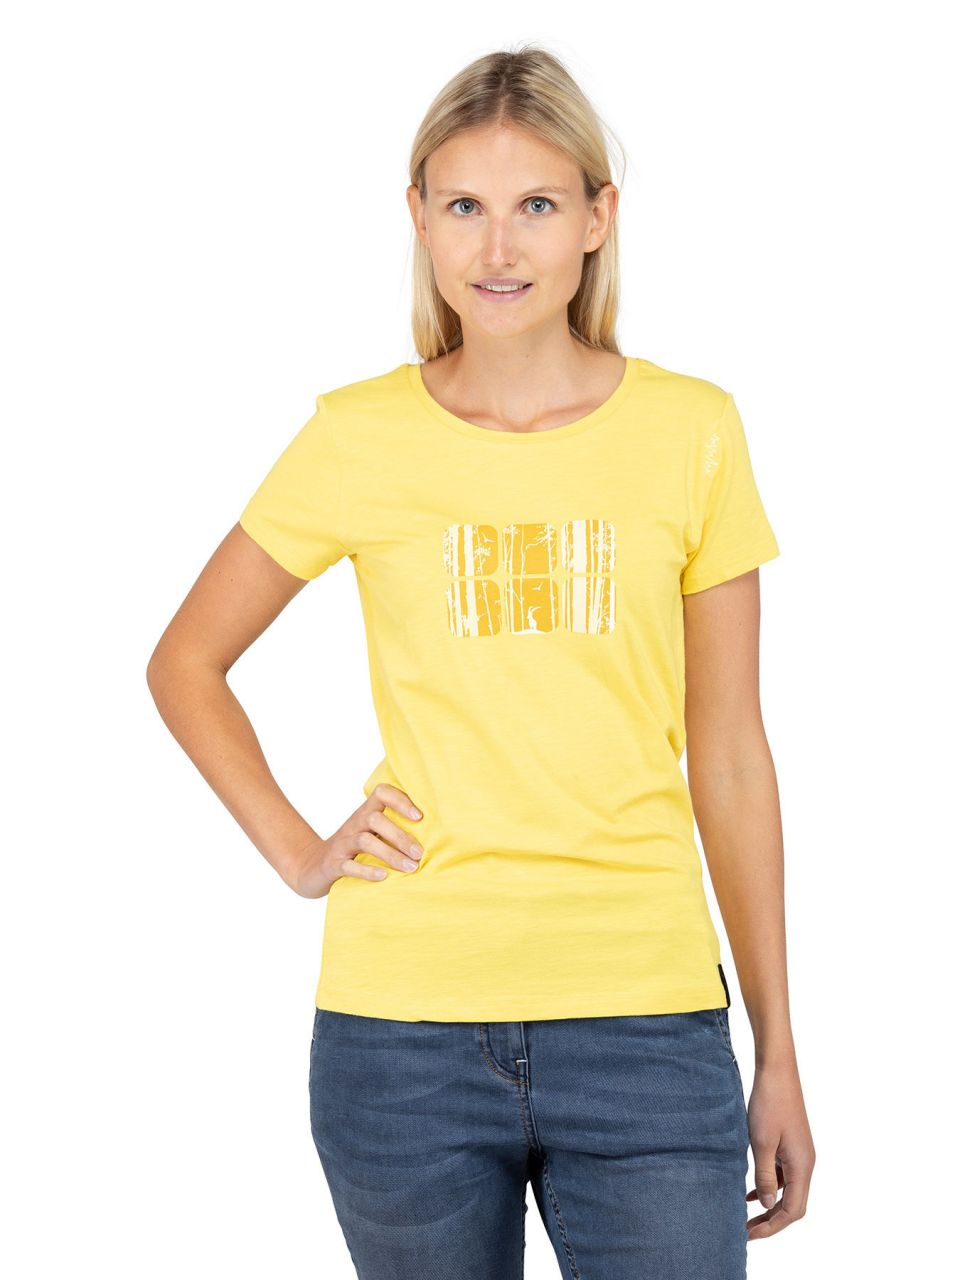 Chillaz Gandia Bloc Woods yellow 38 EU/M